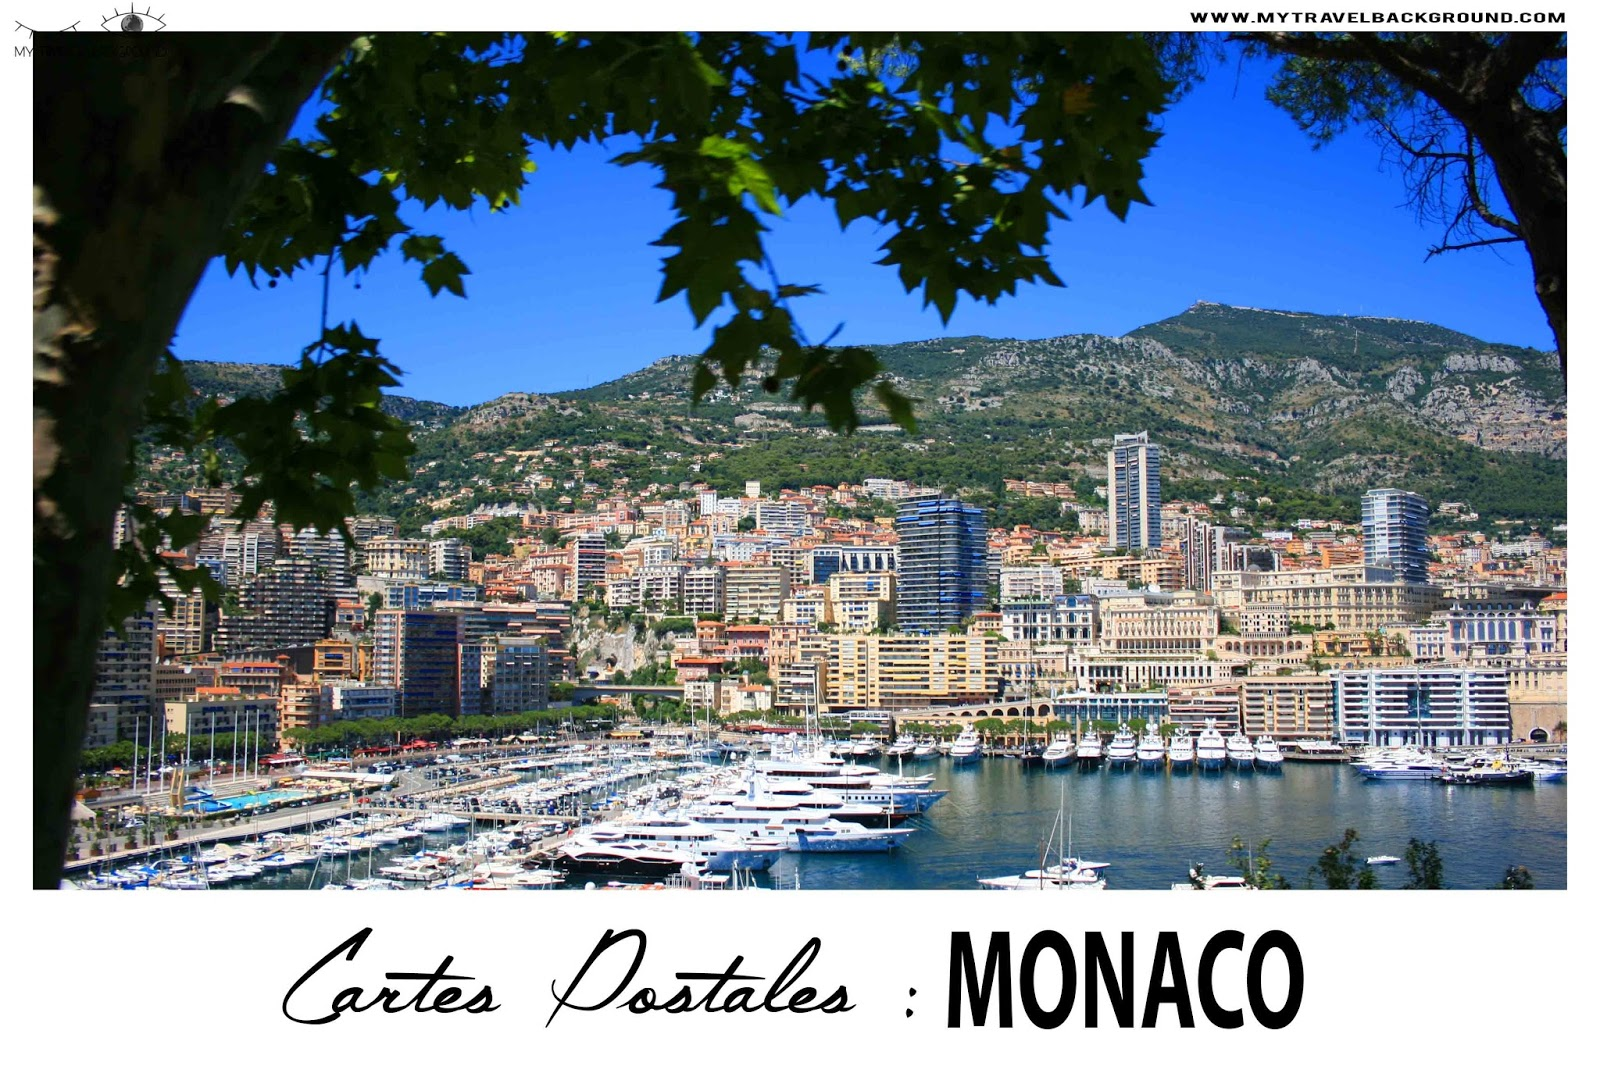 My Travel Background : Cartes Postale Monaco